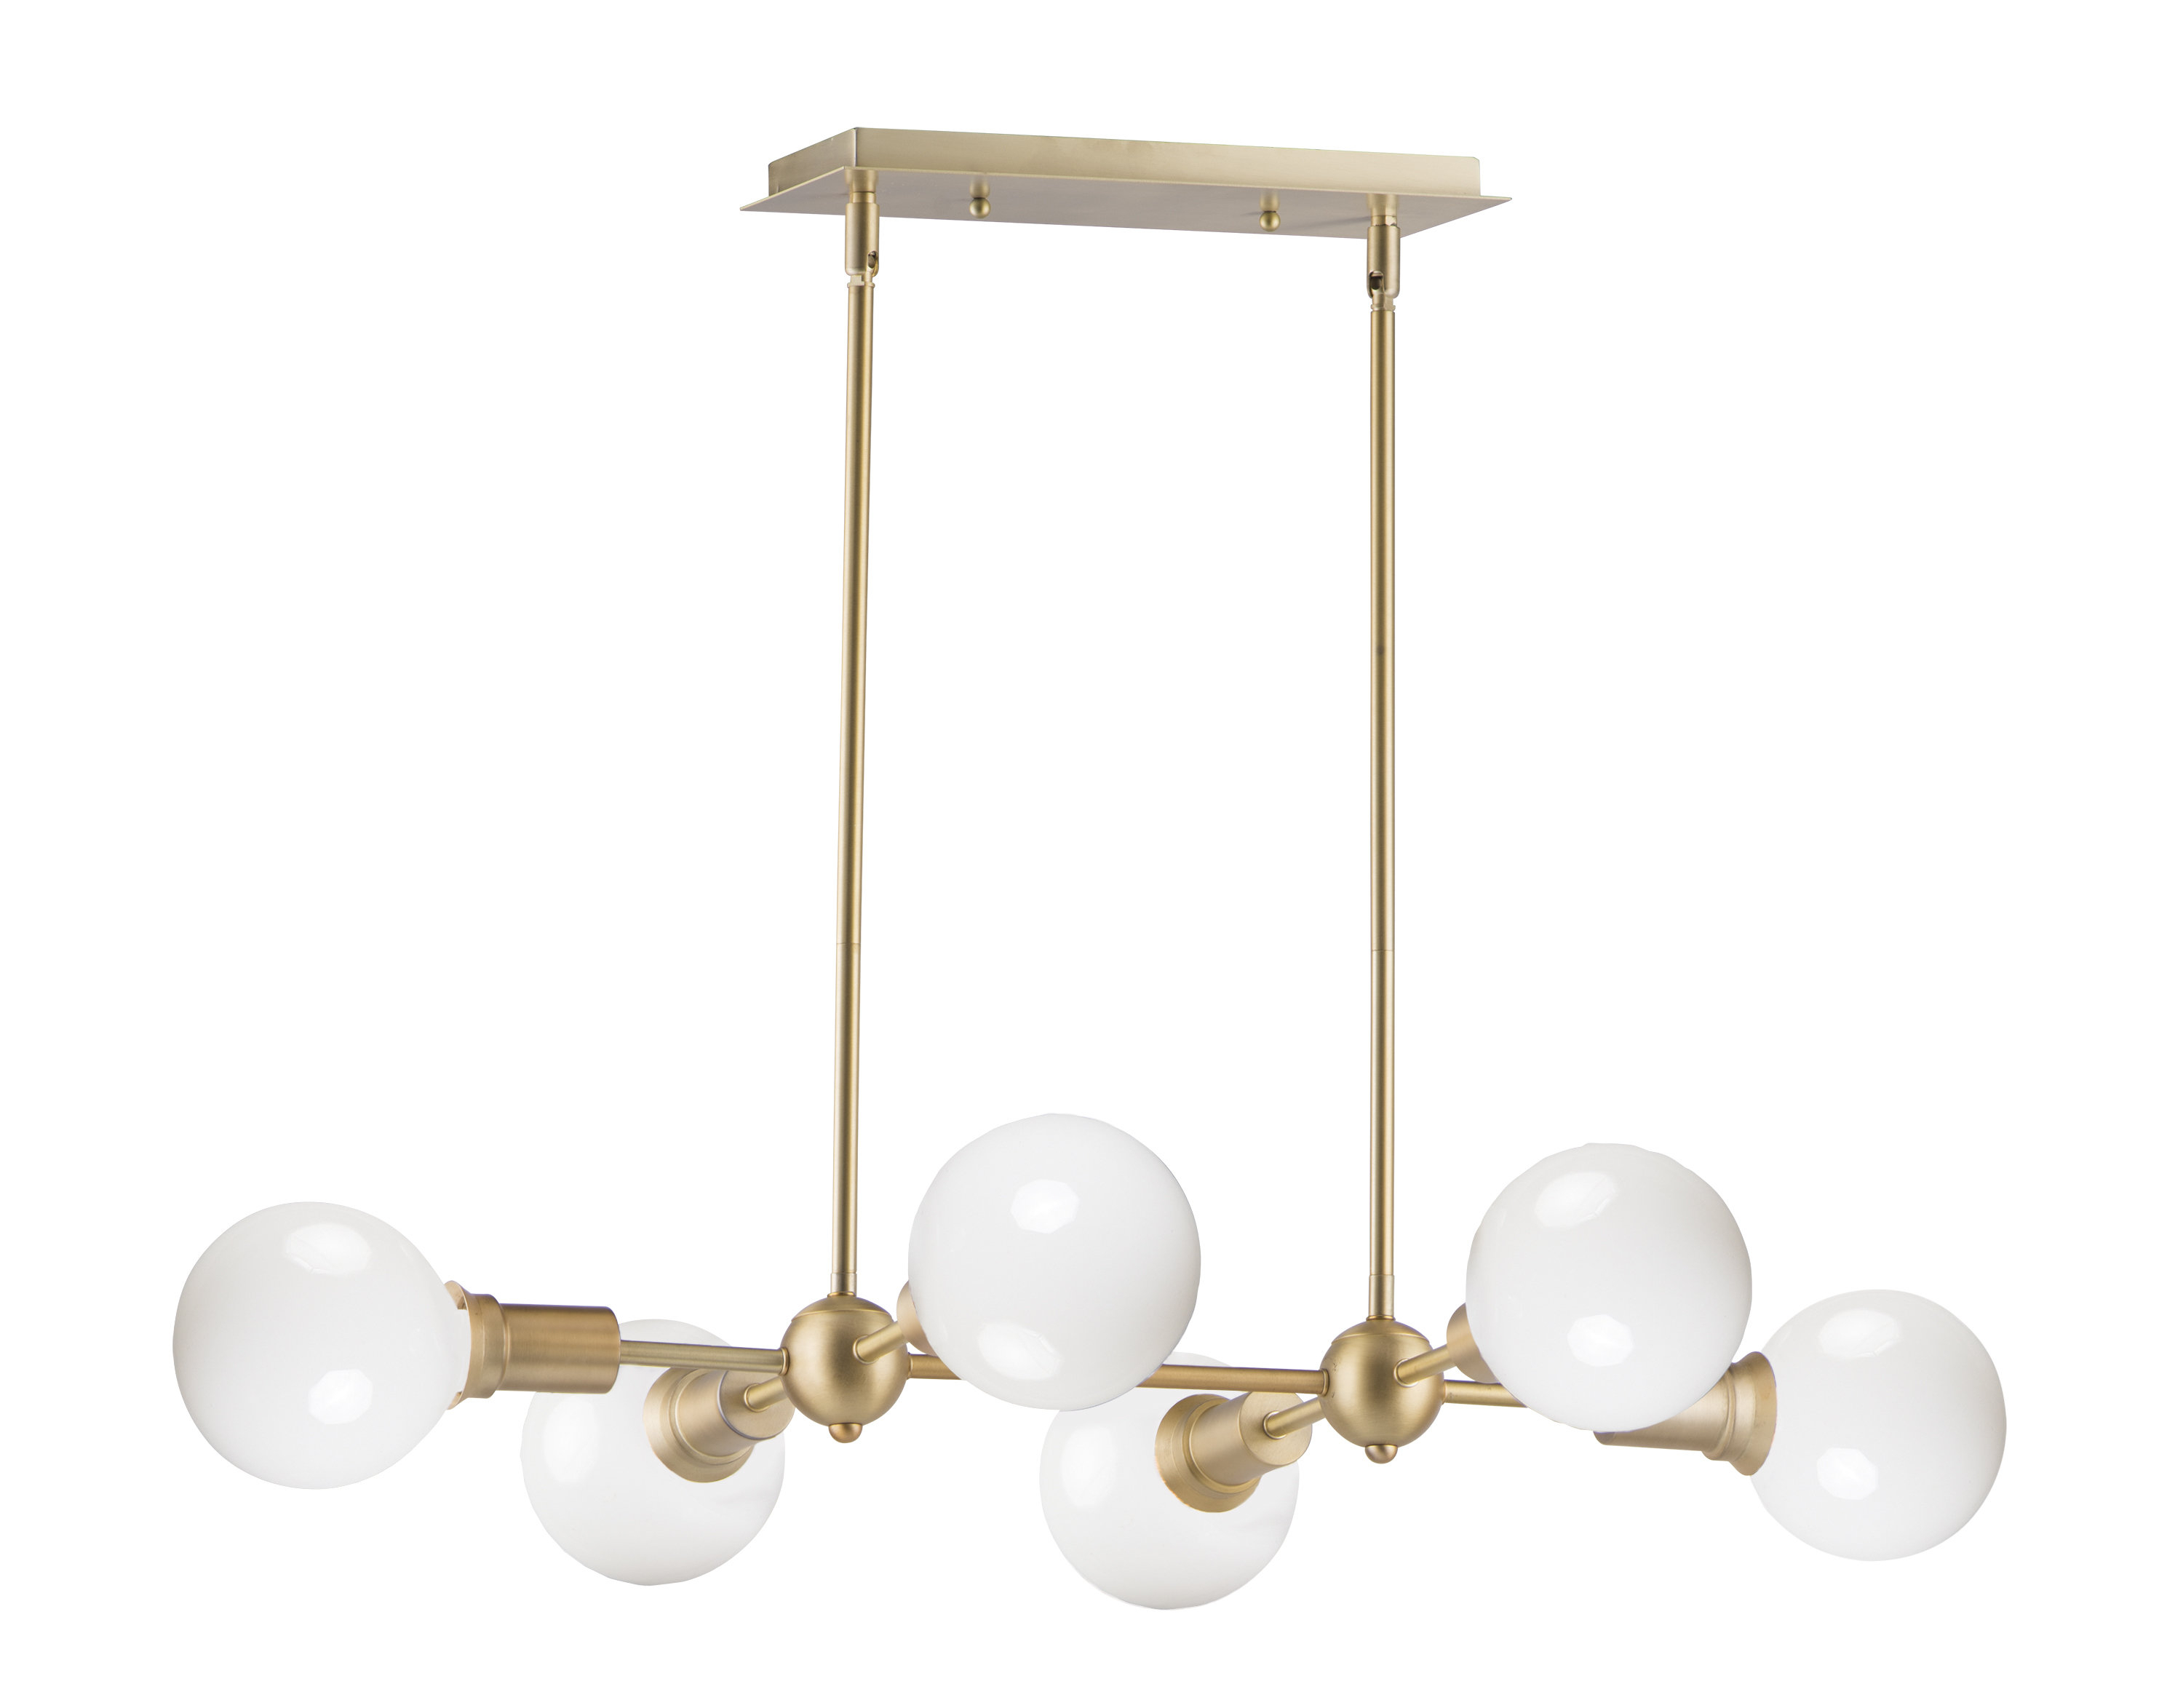 Eladia 6 Light Sputnik Chandeliers In Famous Godbey 6 Light Sputnik Chandelier (View 7 of 25)